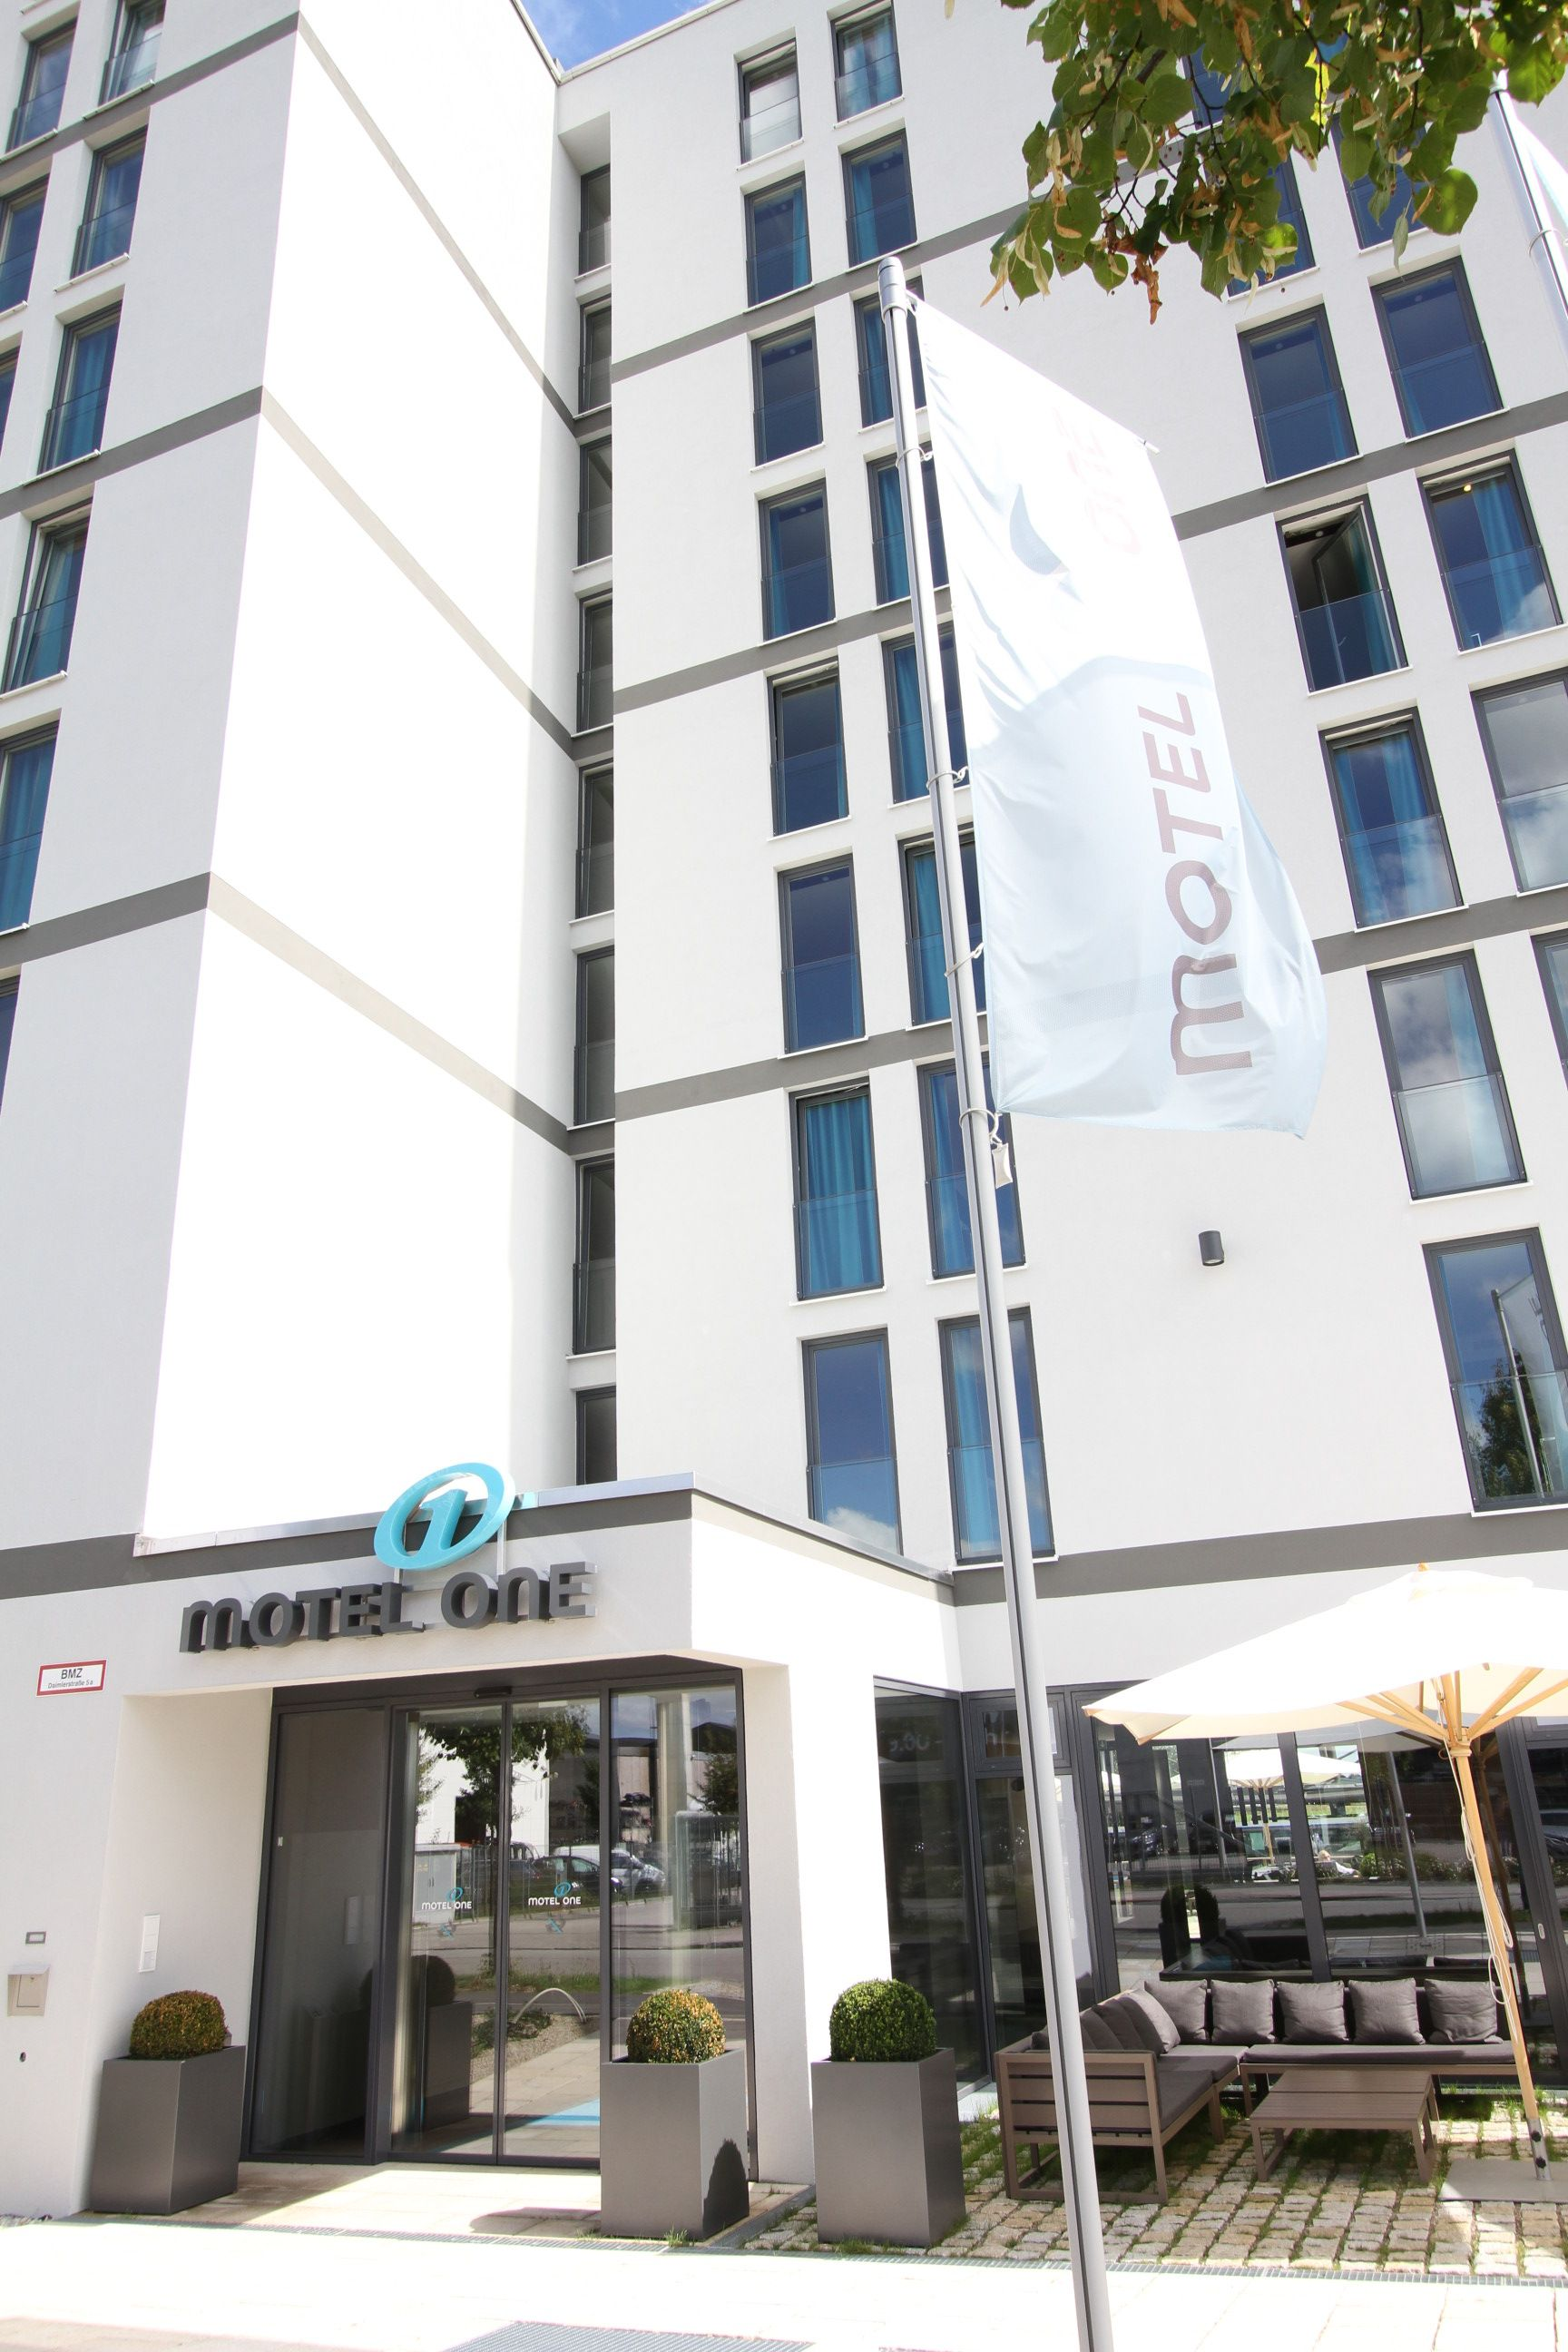 Hotel One Garching Hotel Munich Garching Motel One Motel One In Munich